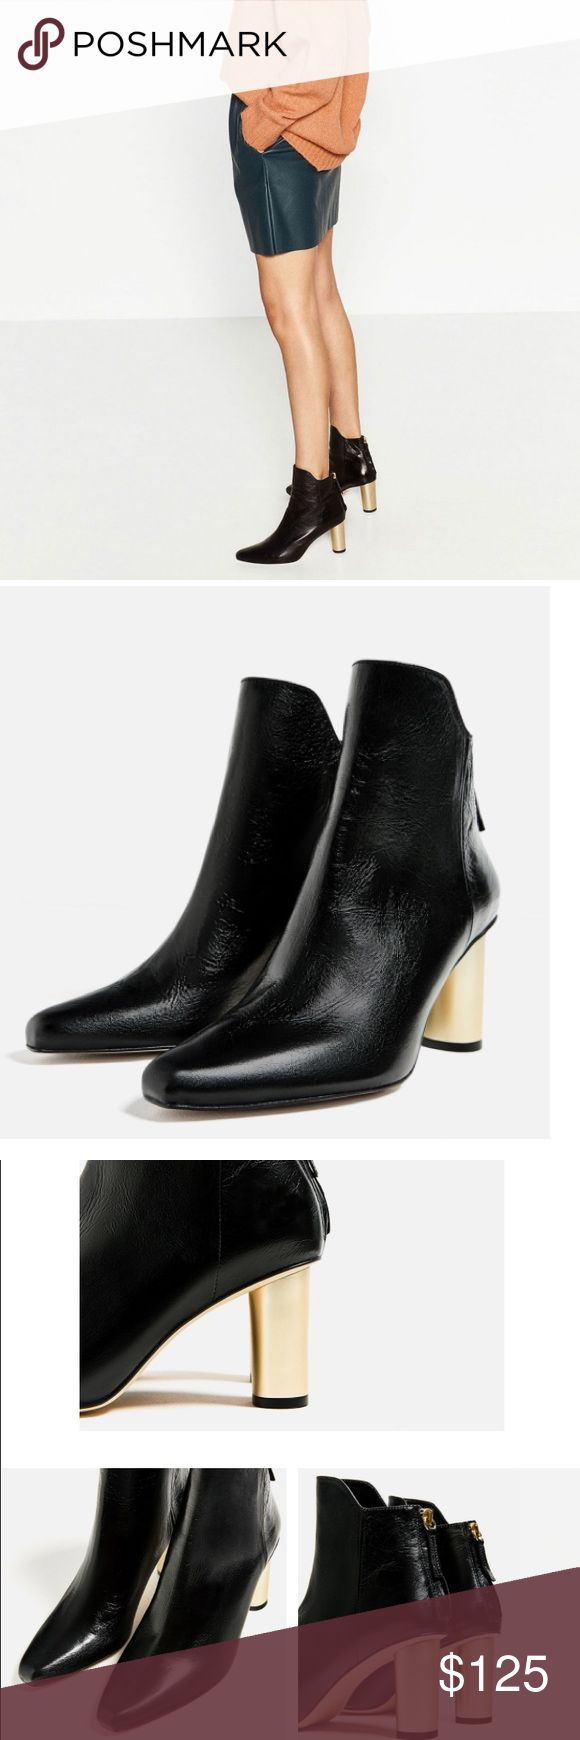 "Black heel ankle boots Super trendy Black heel ankle boots with gold tone heels. Approximately 3"" heels. 100% leather. Zara Shoes Ankle Boots & Booties"